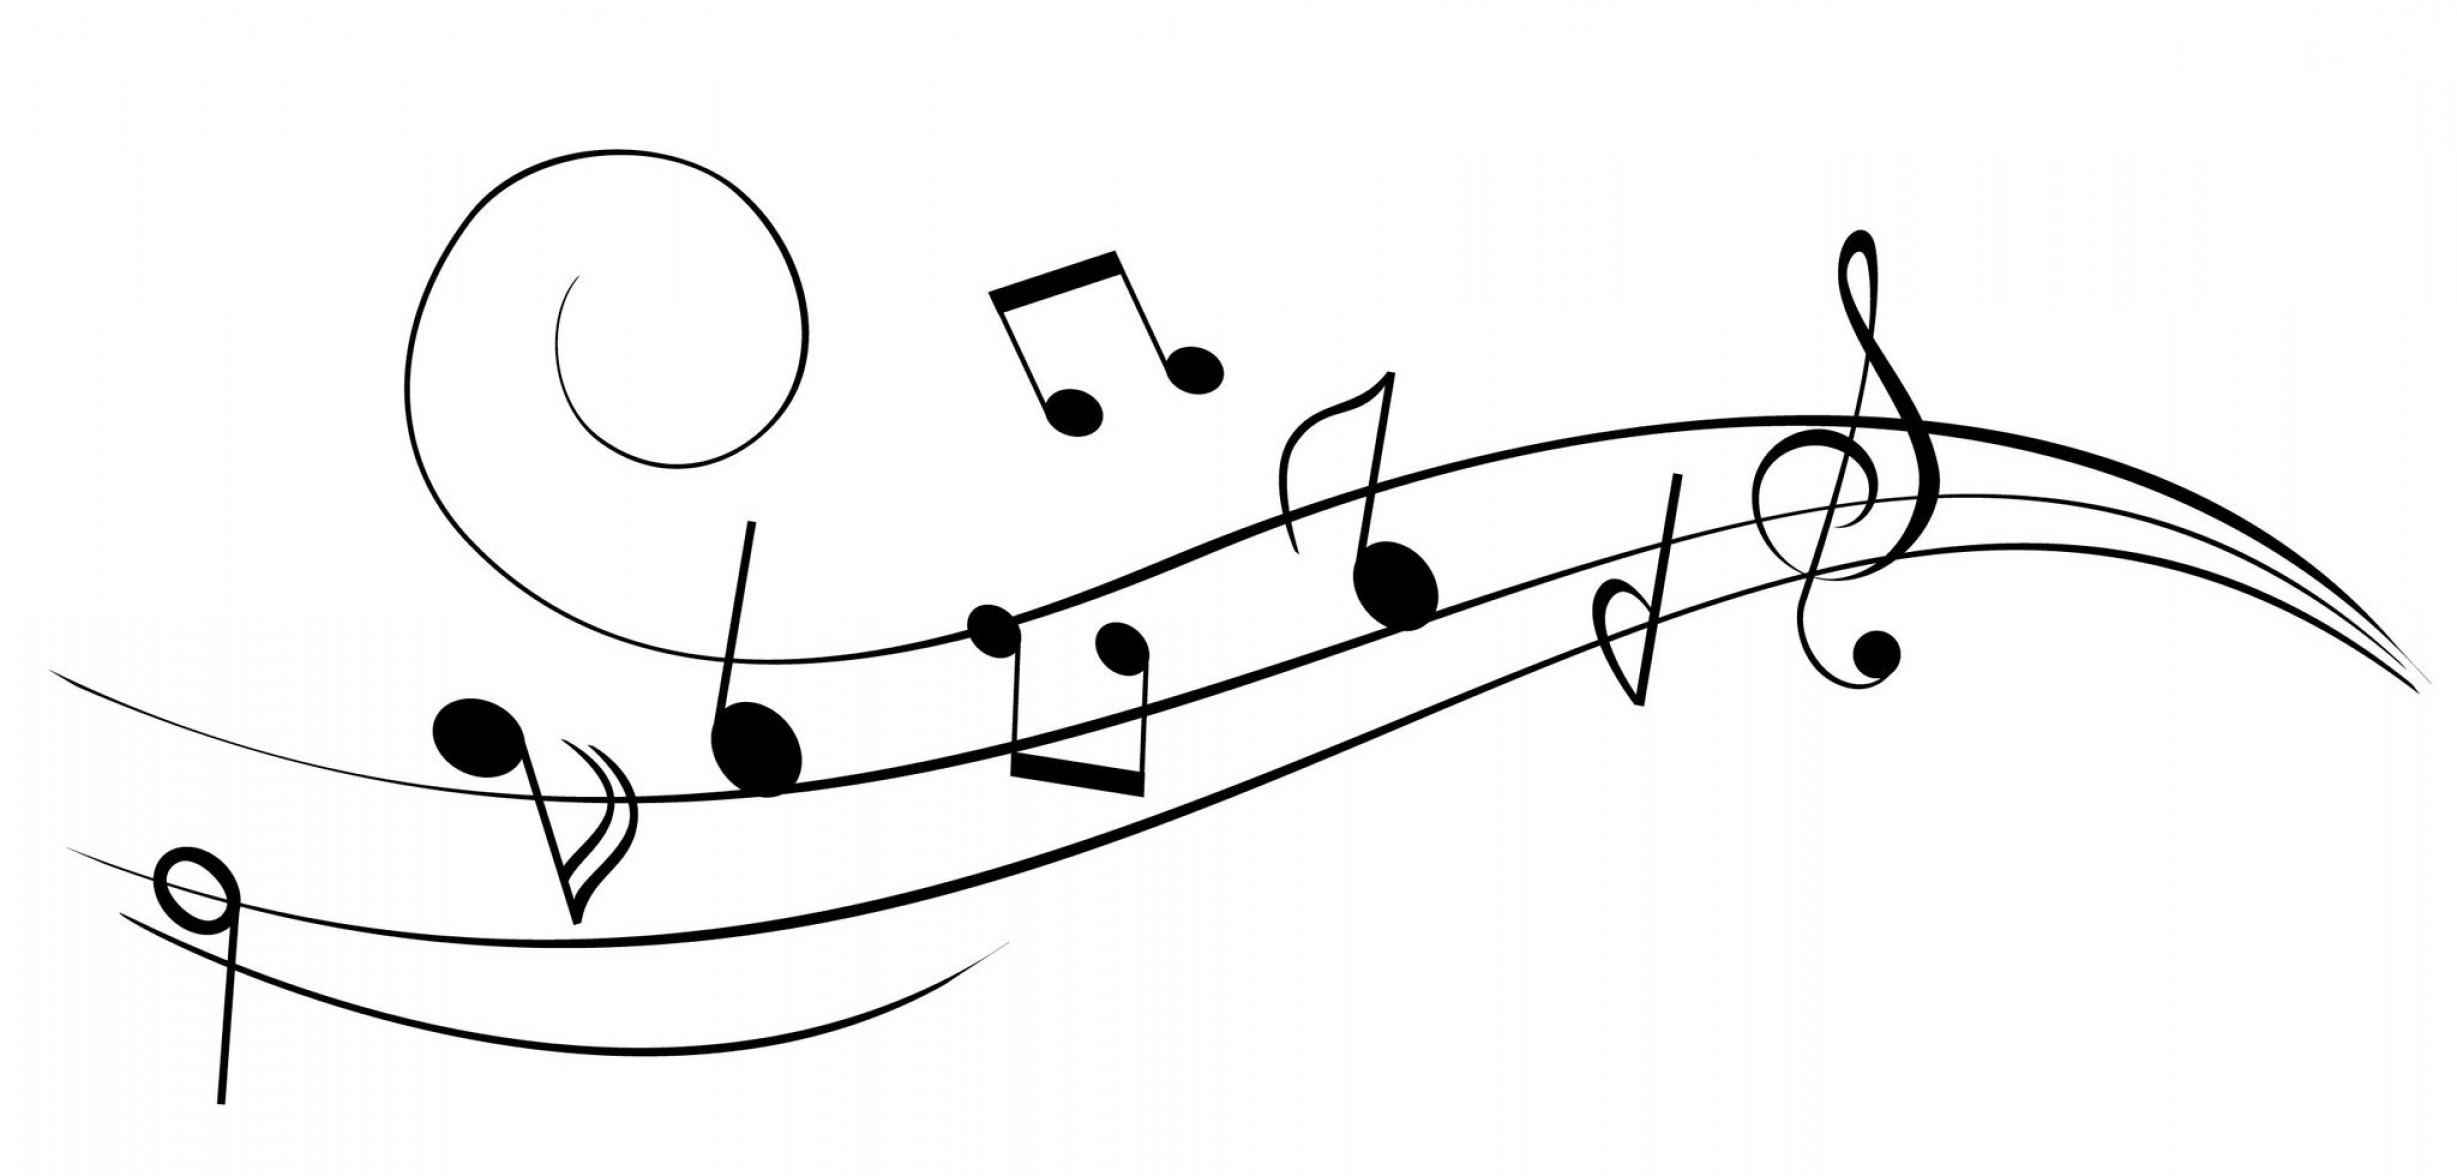 Free Png Hd Of Music Notes | SOIDERGI #261562 - PNG Images